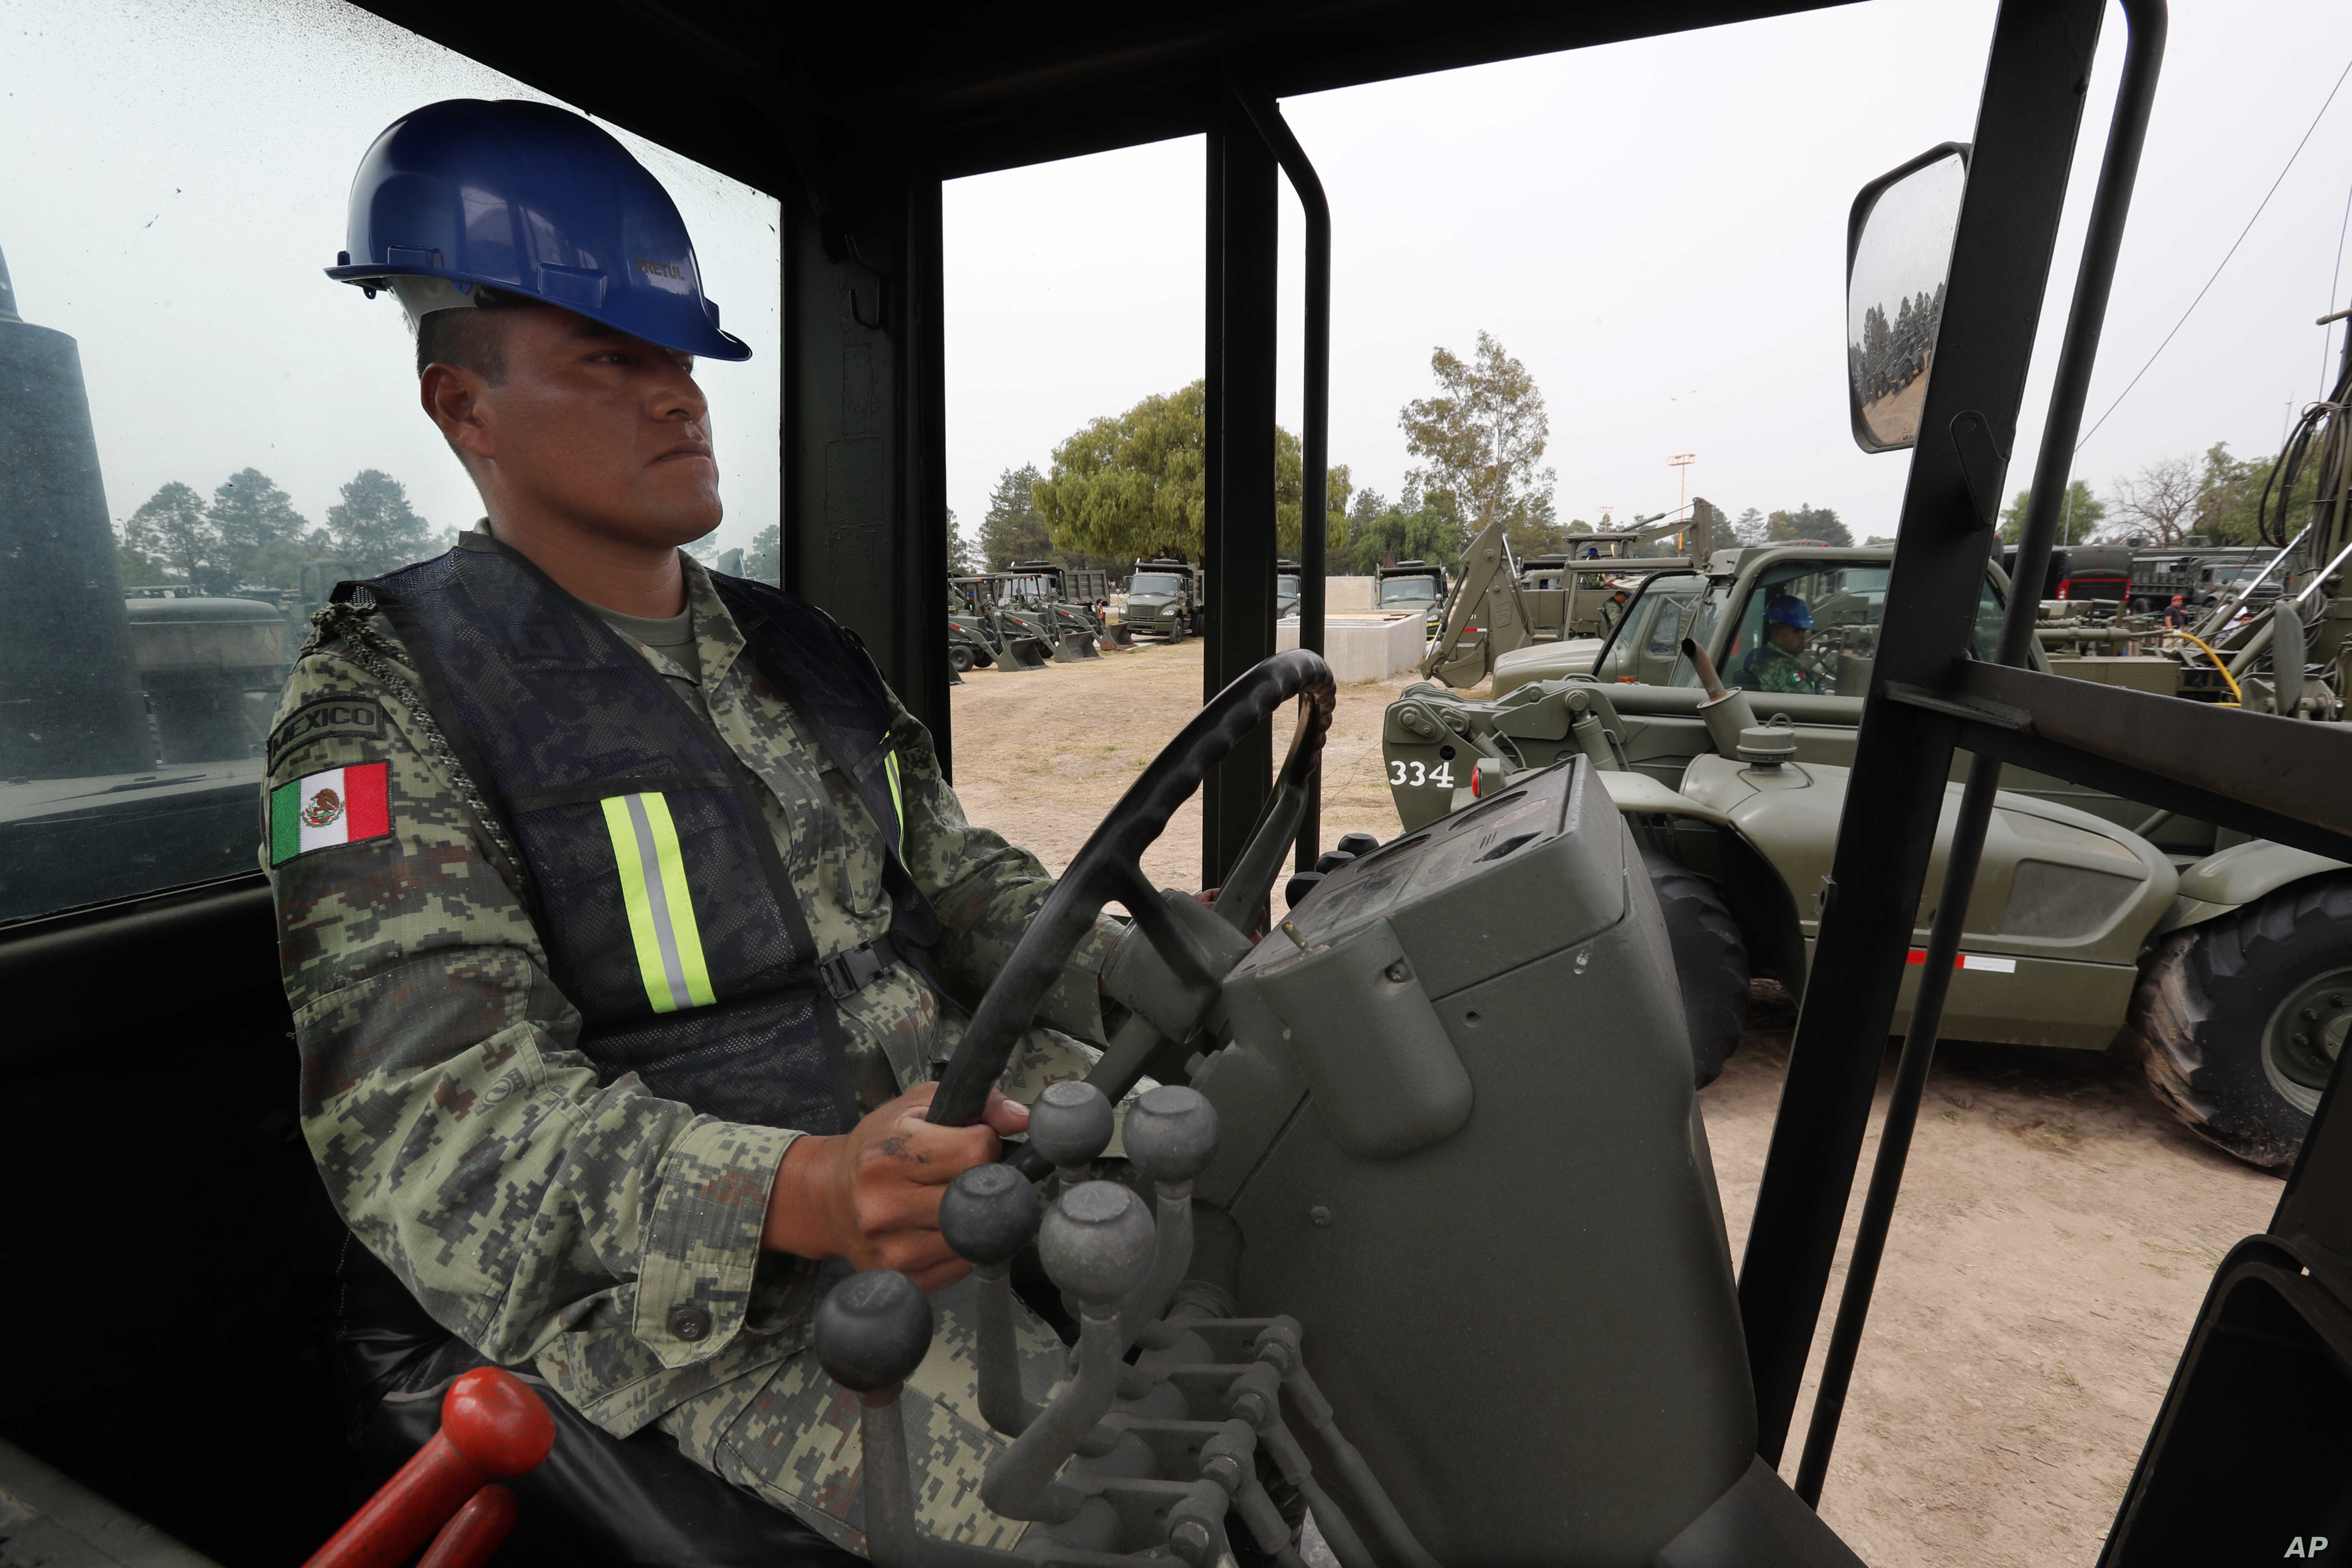 A Mexican army soldier drives a motor grader during the launch of the construction of Mexico City's new airport at the Military Airbase Number 1 in Santa Lucia, on the outskirts of Mexico City, April 29, 2019.